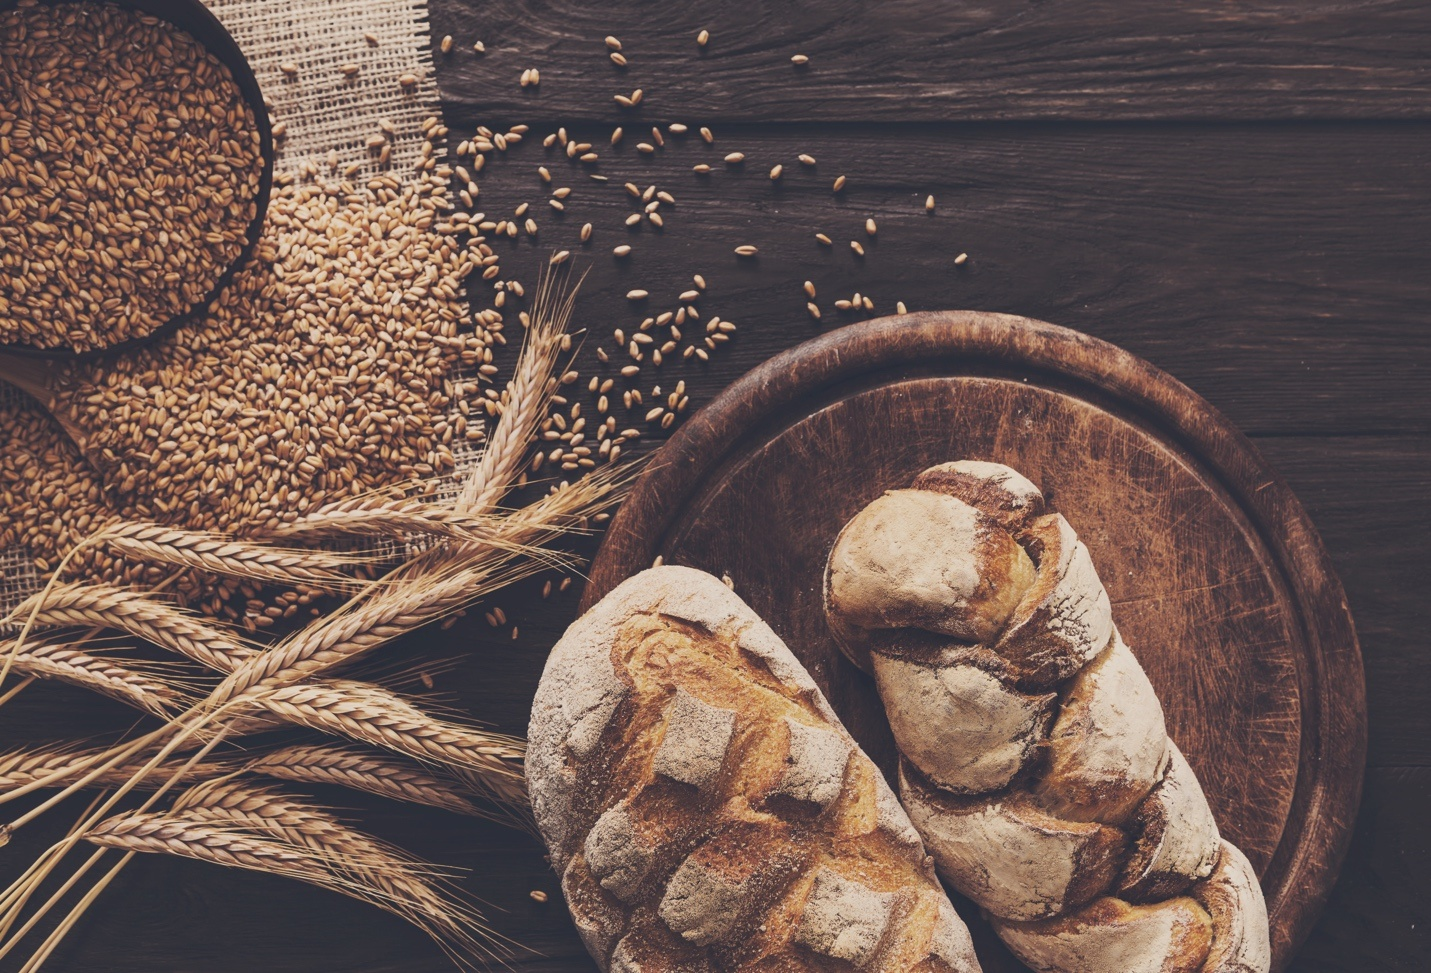 whole grain bread - Top 20 Natural Foods To Help You Manage Your Diabetes Effectively